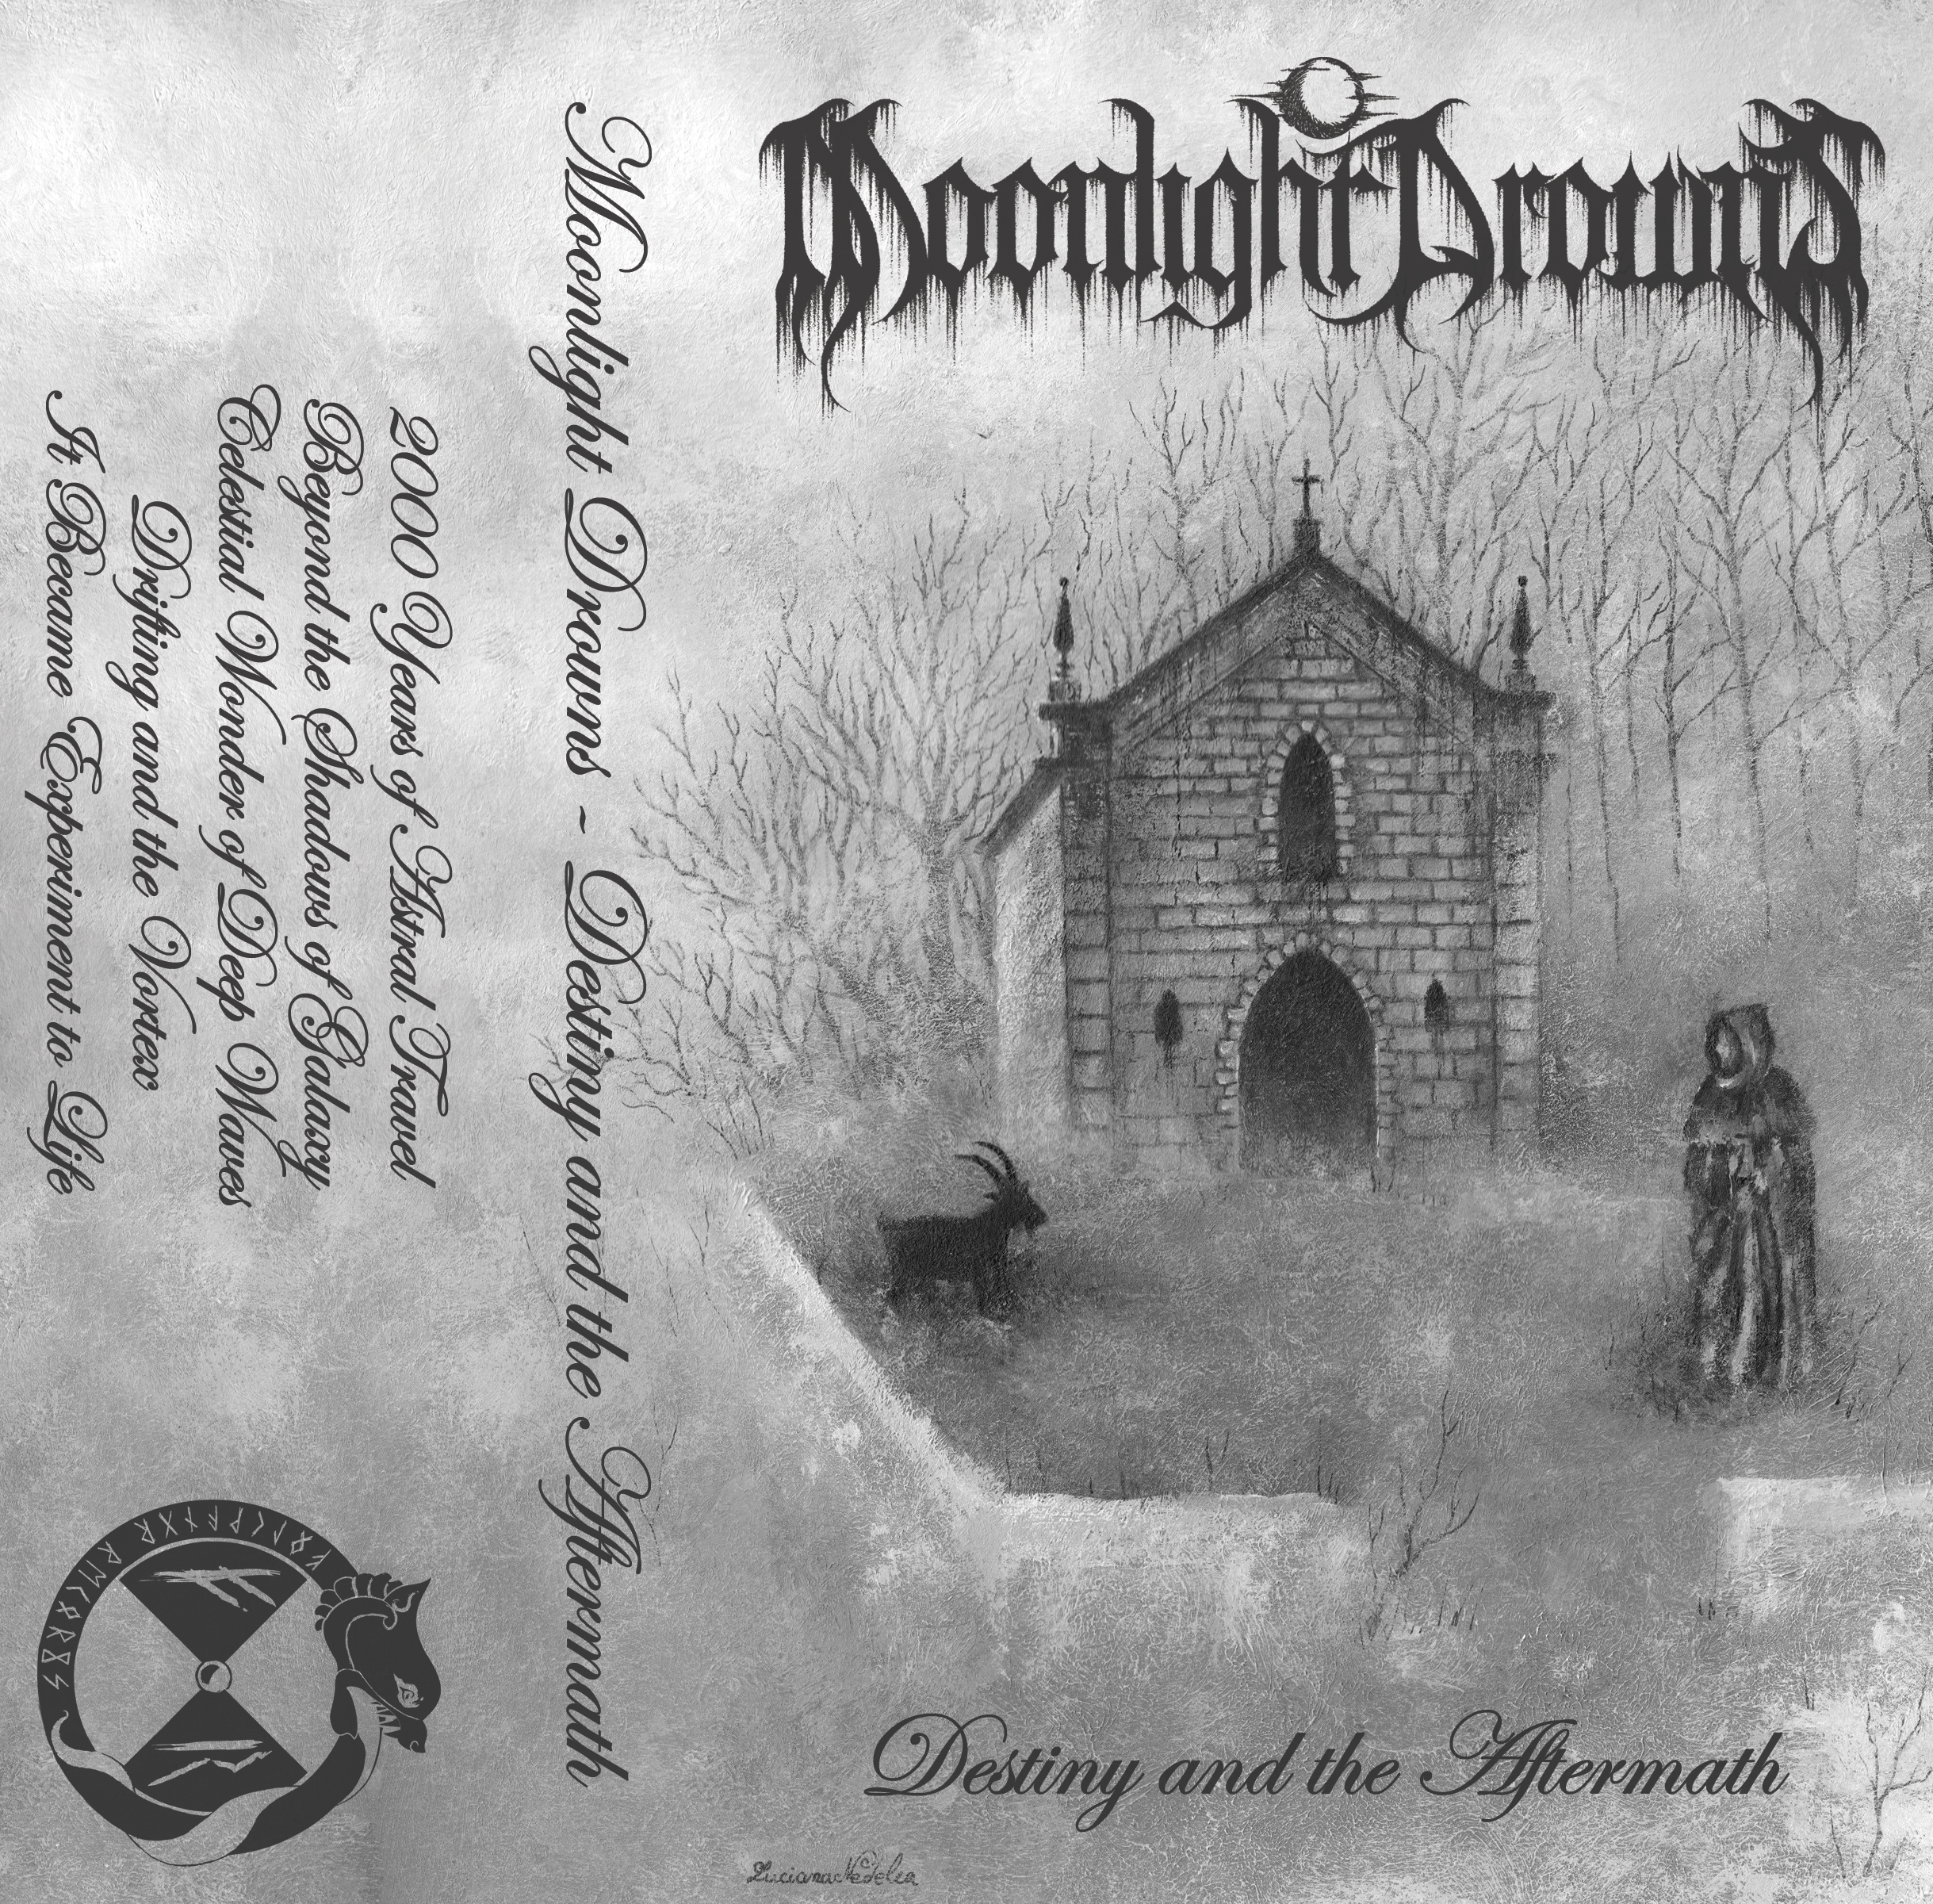 Folkvangr Records - Moonlight Drowns - Destiny and the Aftermath